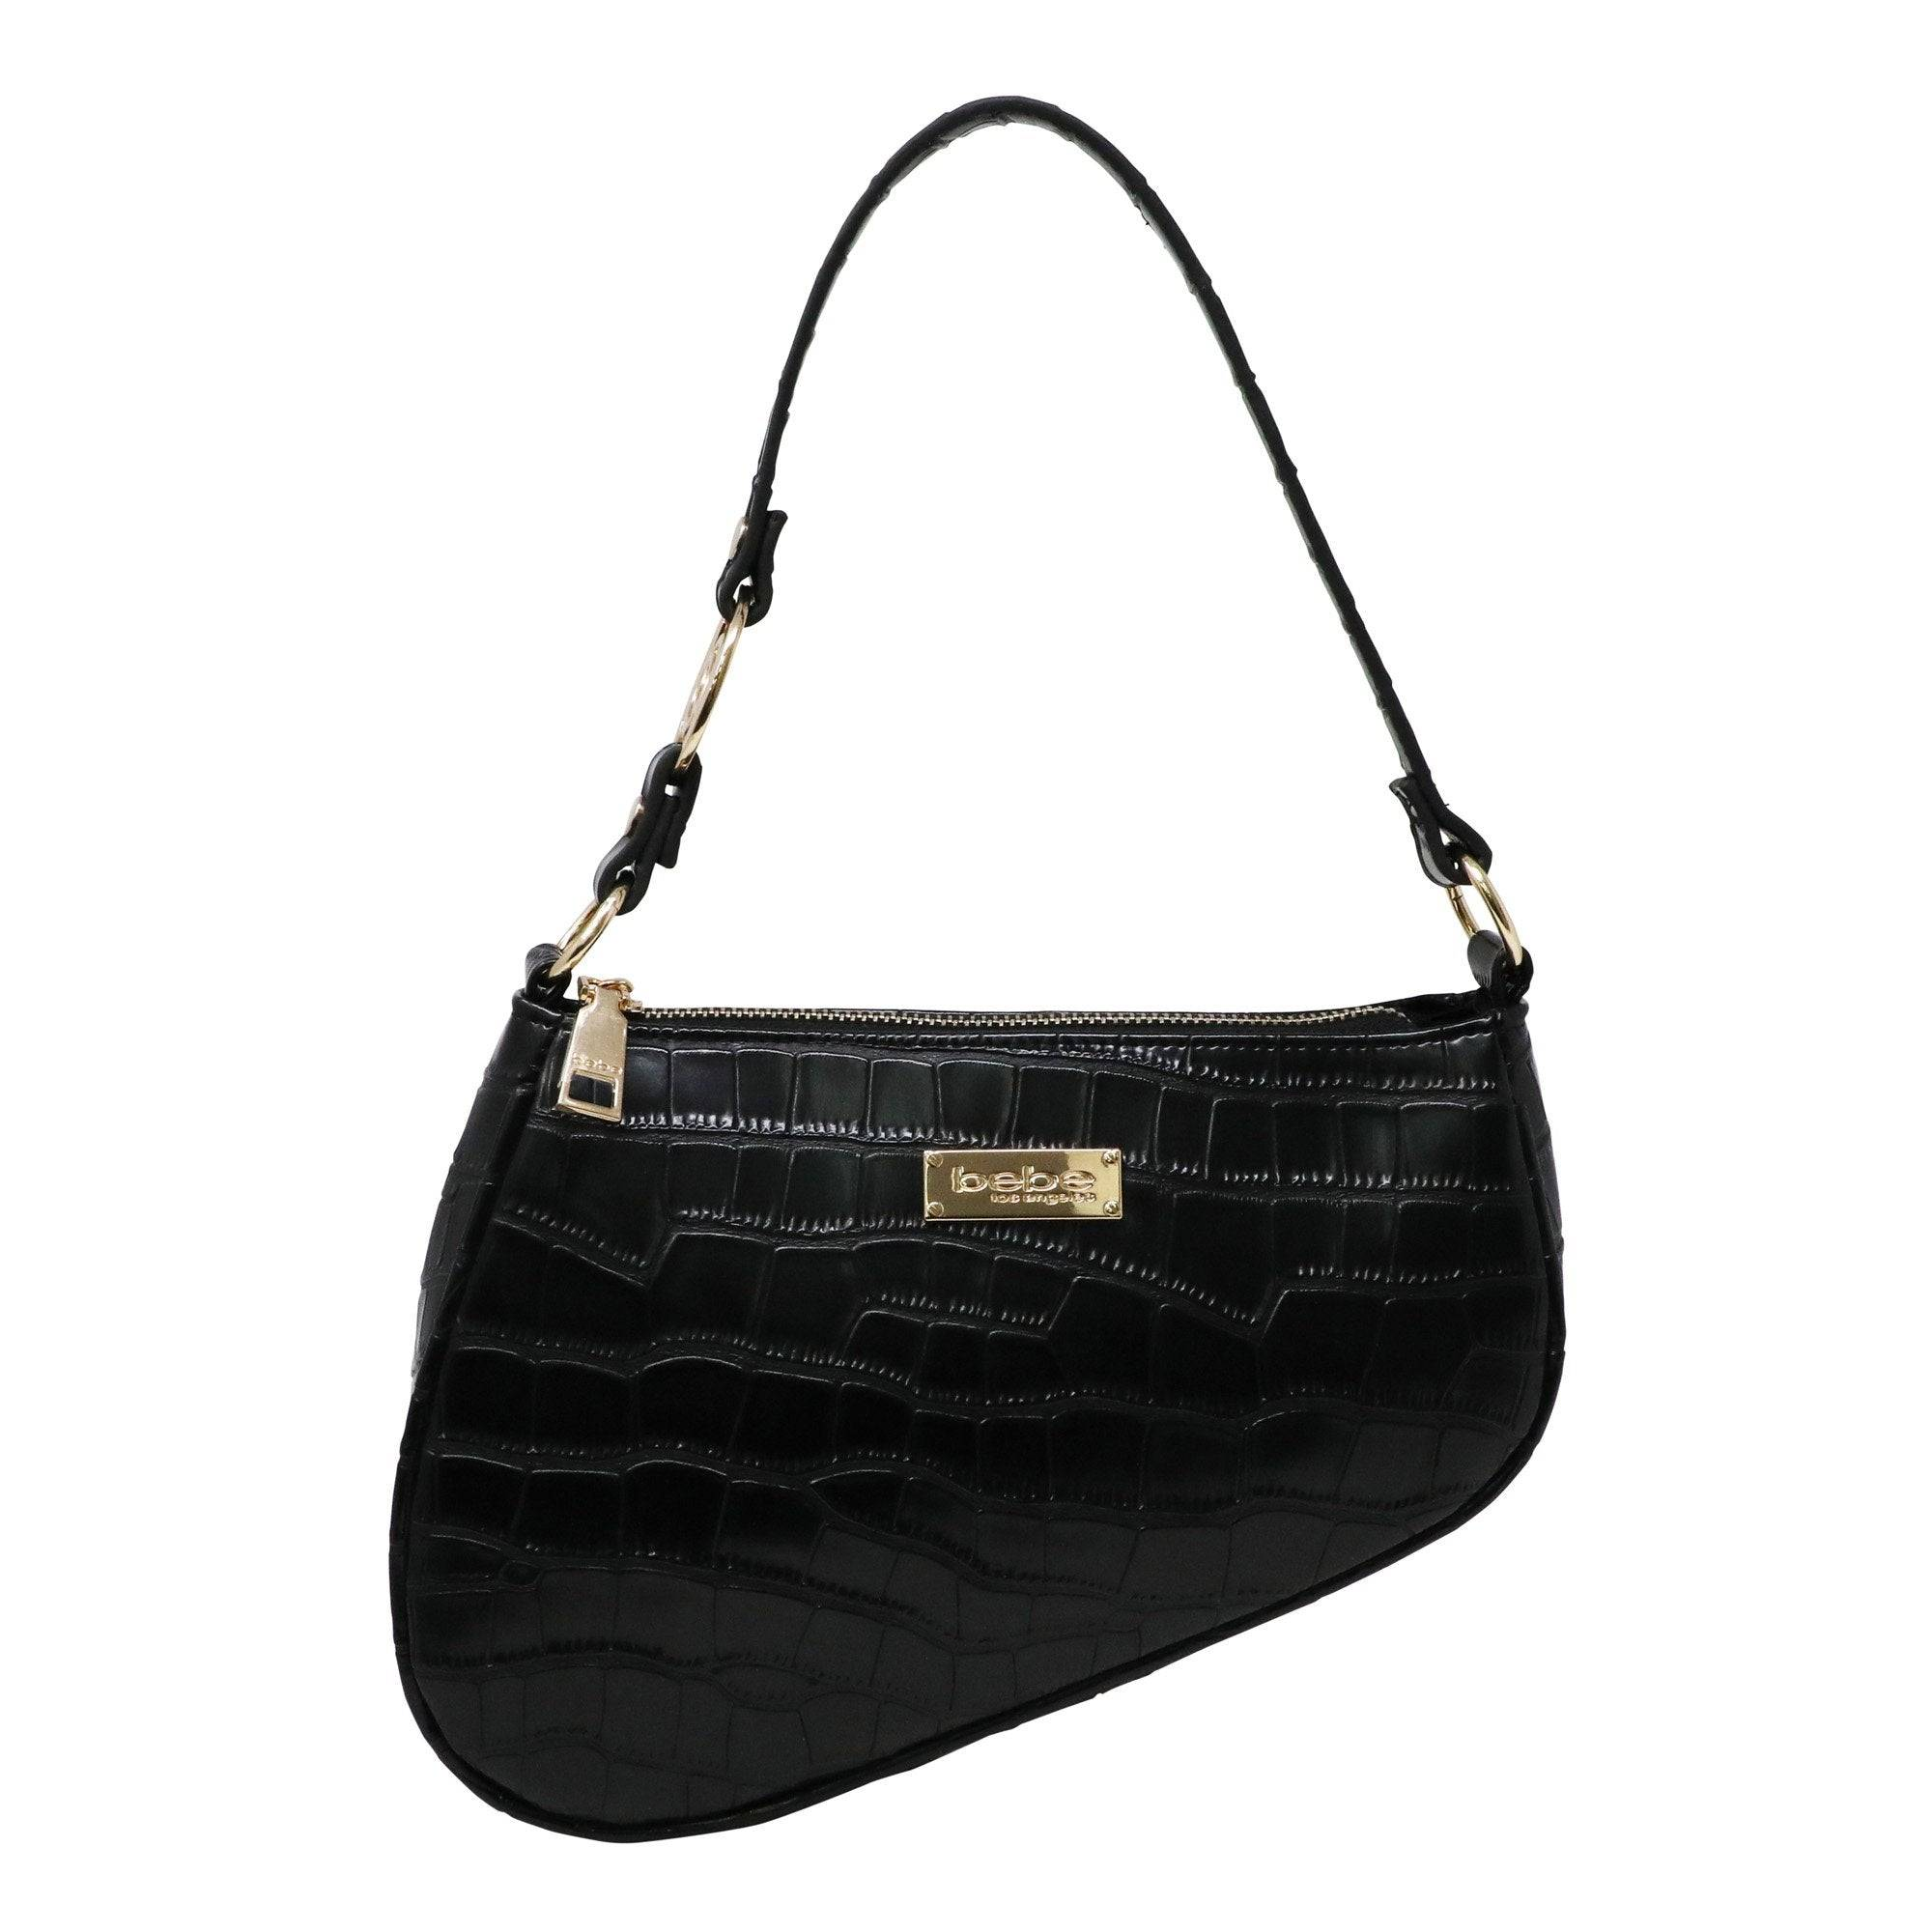 Bebe Women's Tara Saddle Shoulder Medium Bag in Black Polyester